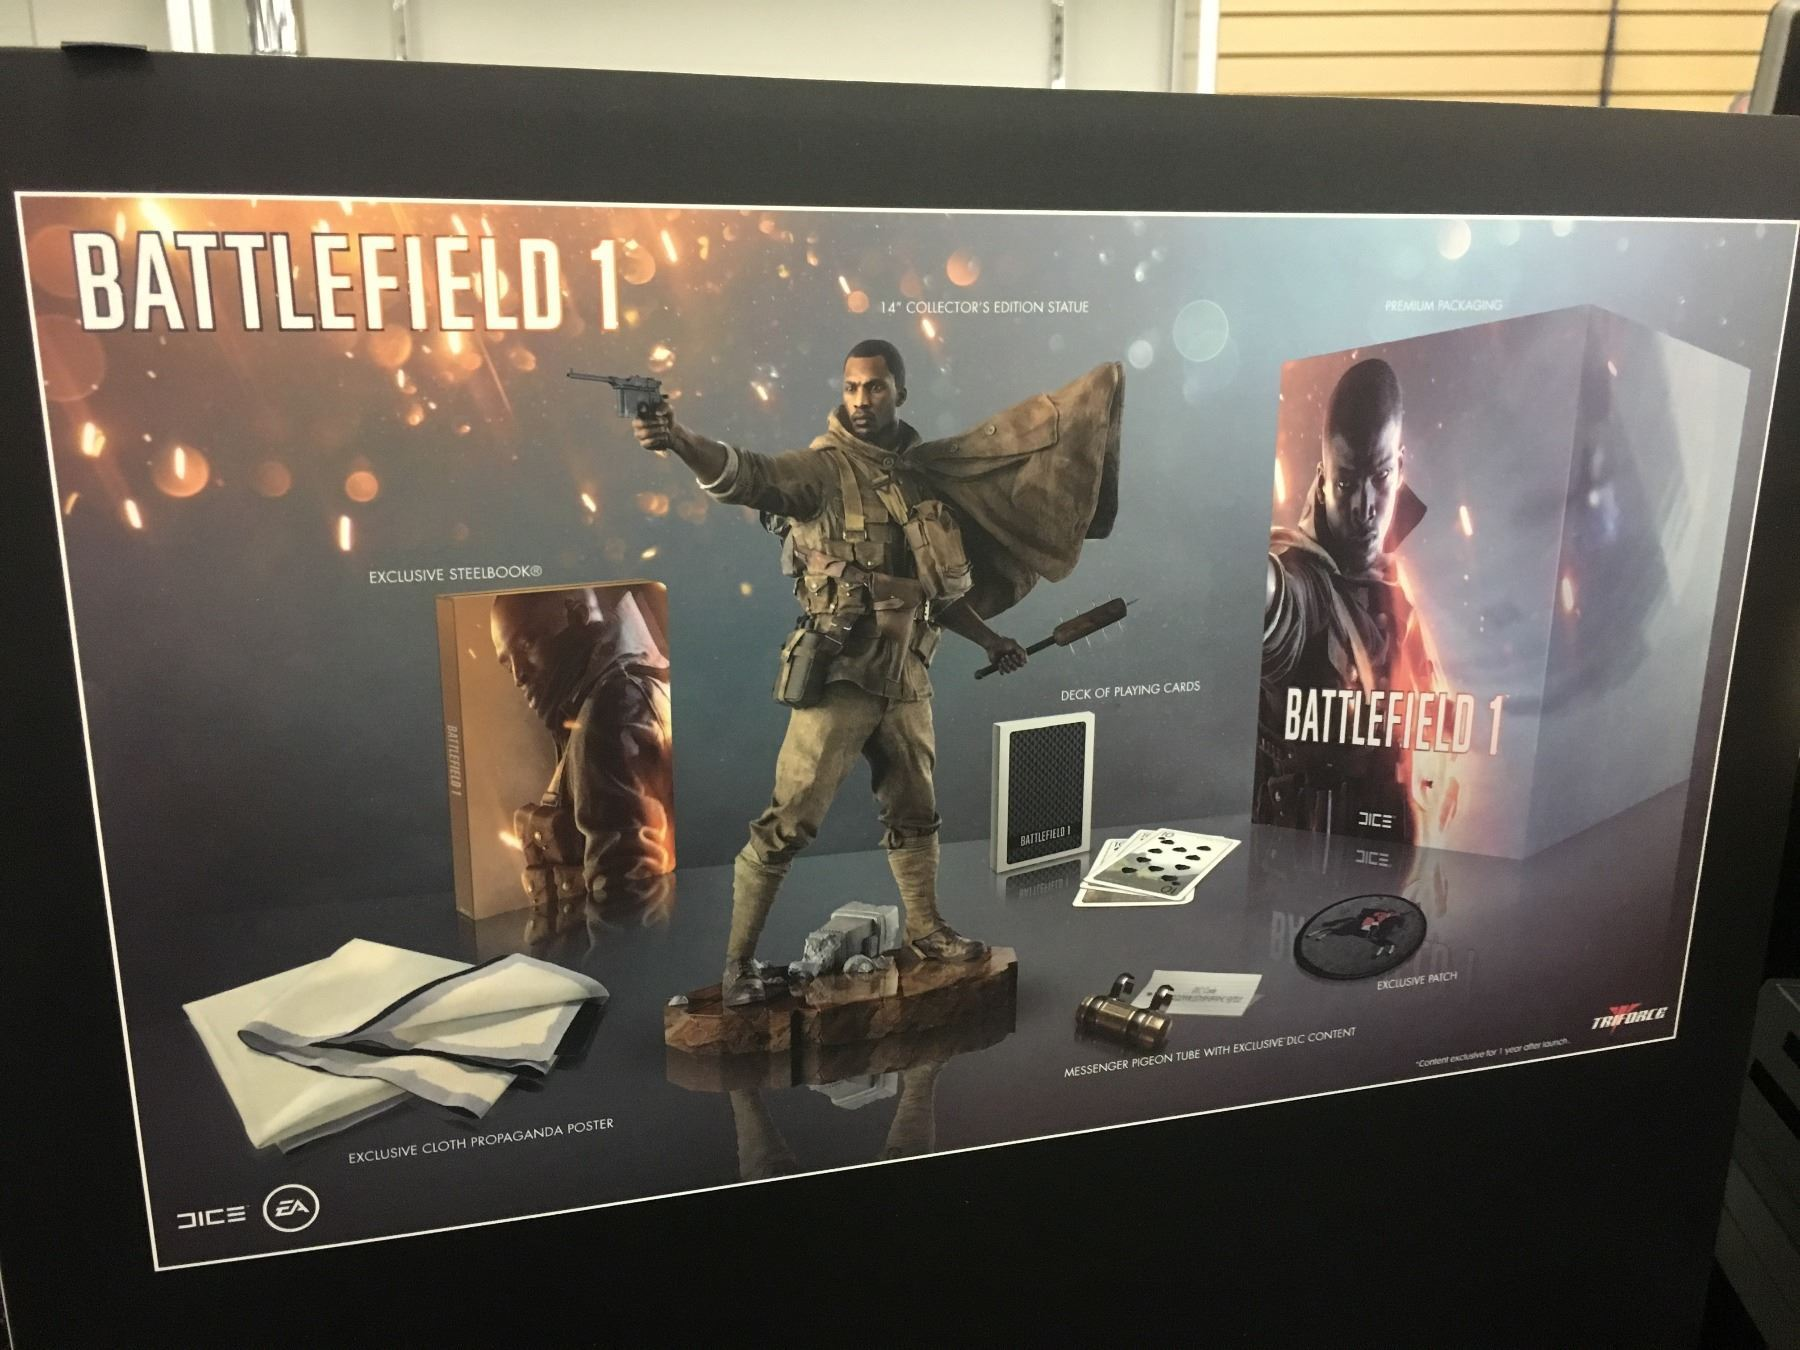 Battlefield 1 Collectors Edition Ps4 Game Bundle With Statue Steel Image 2 Book